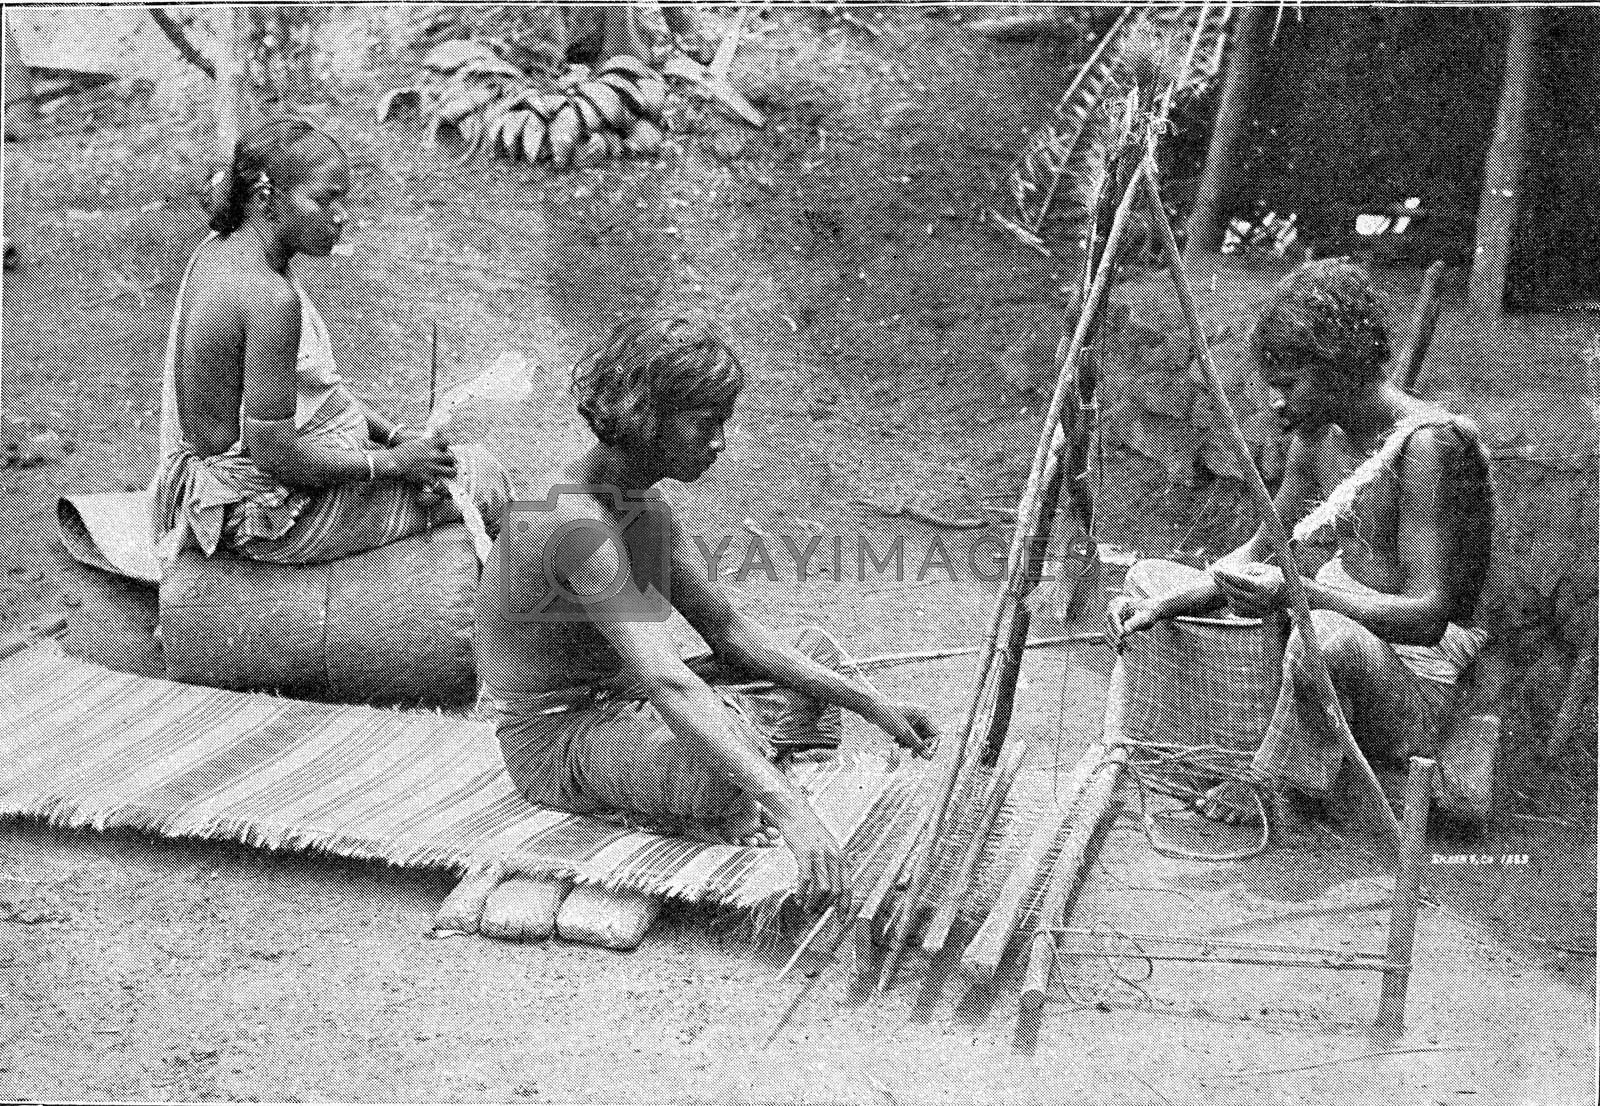 Ceylon Tamils spinning and braiding mats, vintage engraved illustration. From the Universe and Humanity, 1910.